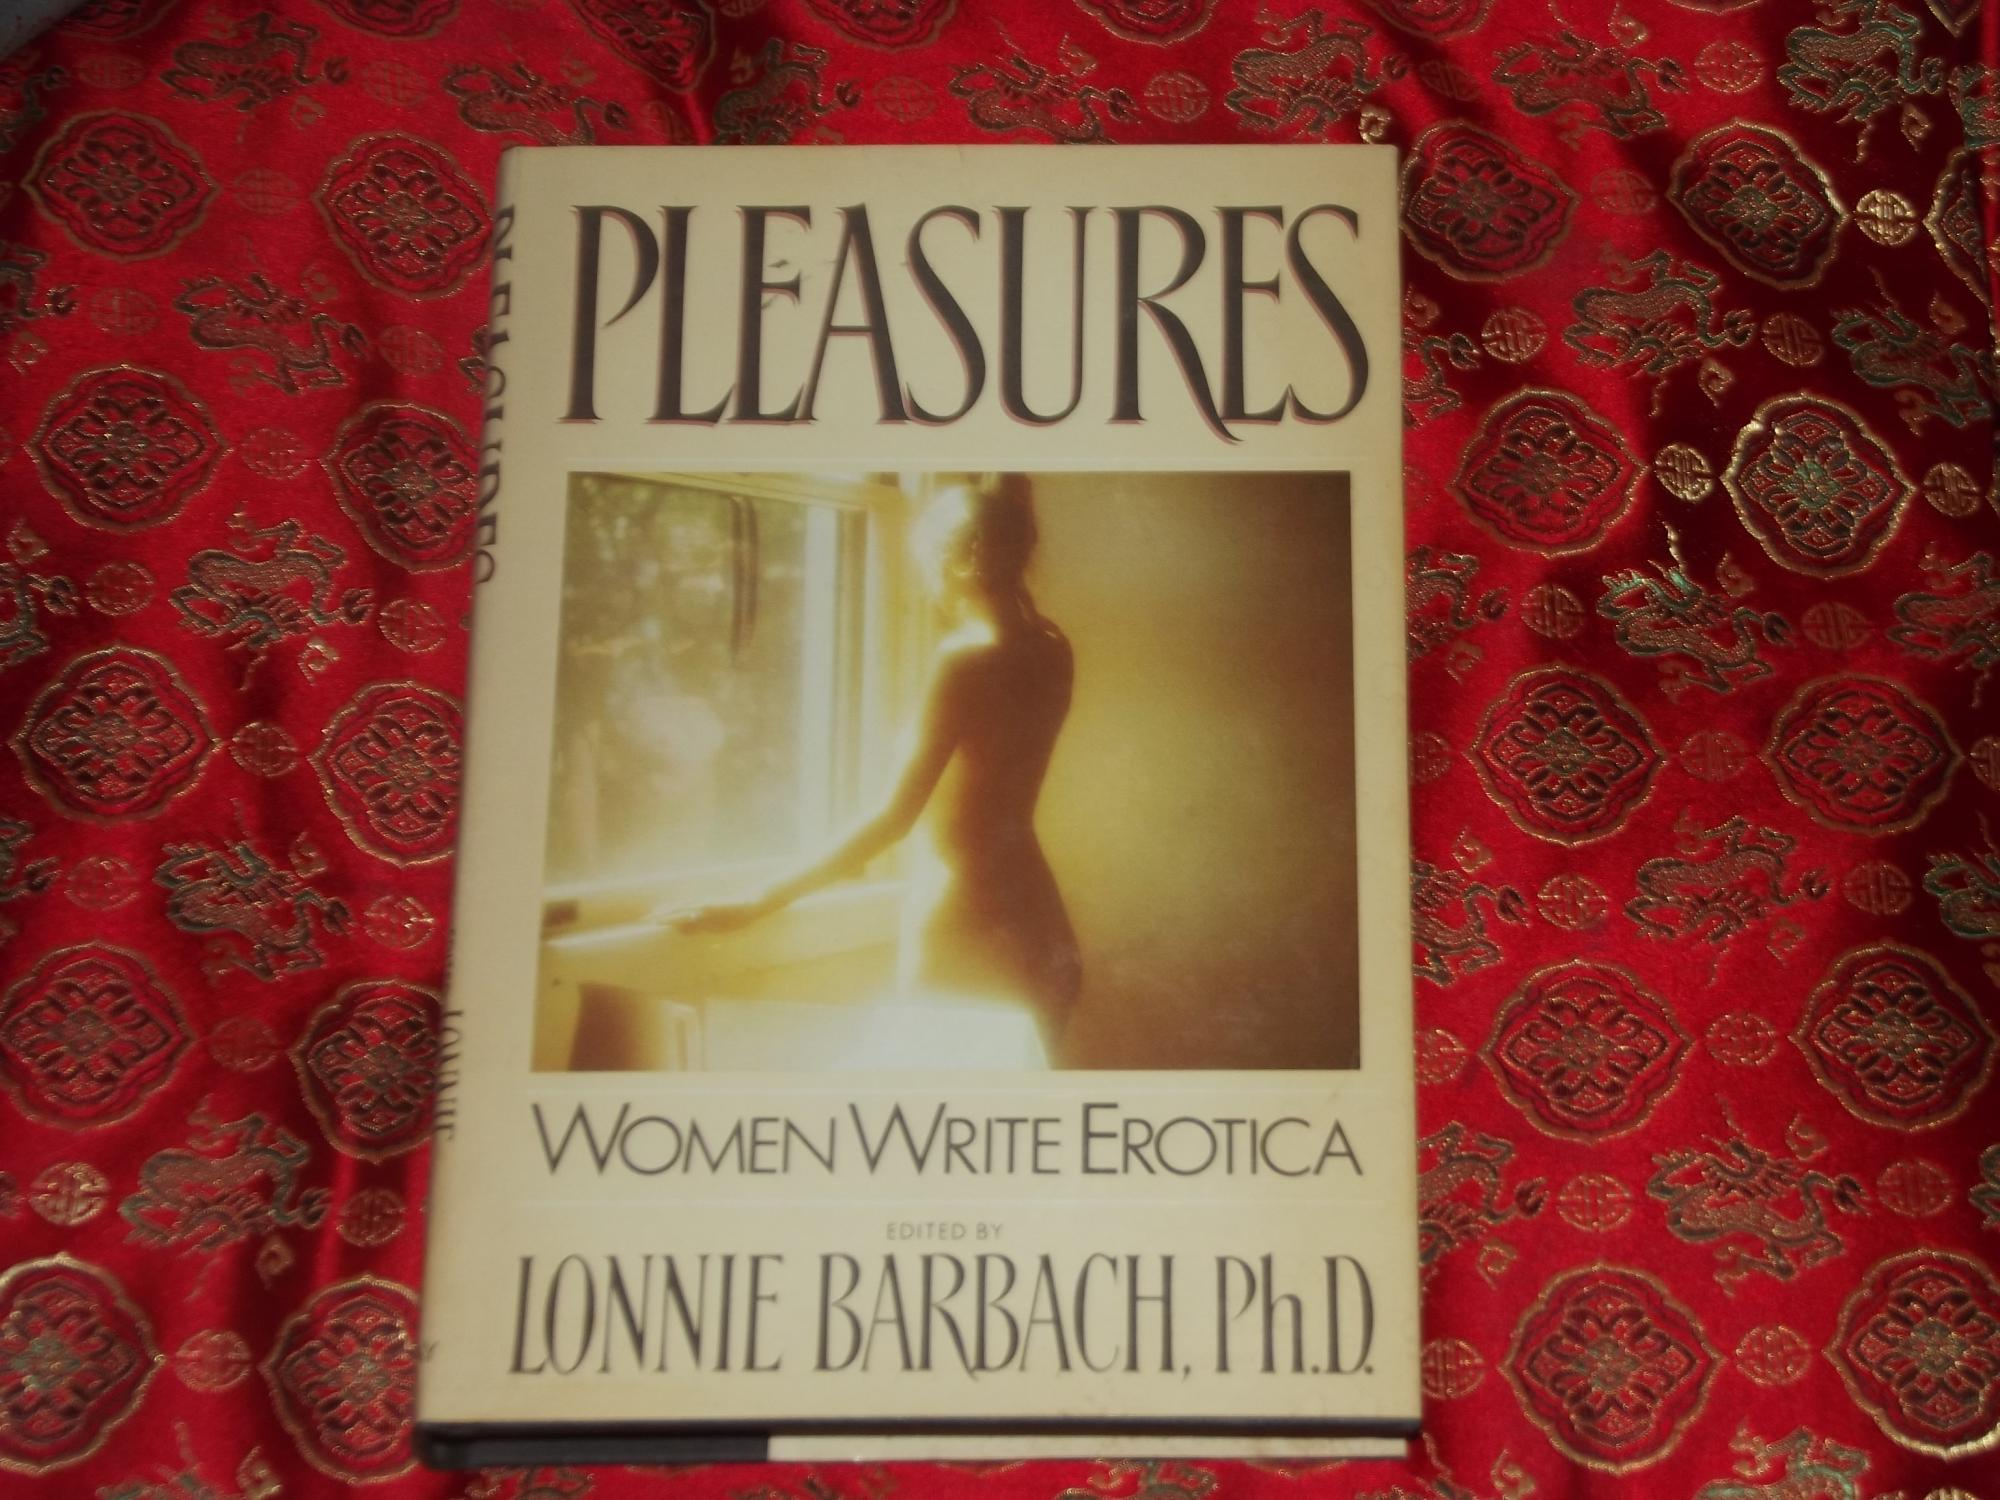 Best erotic fiction, adult sexy kinky stories